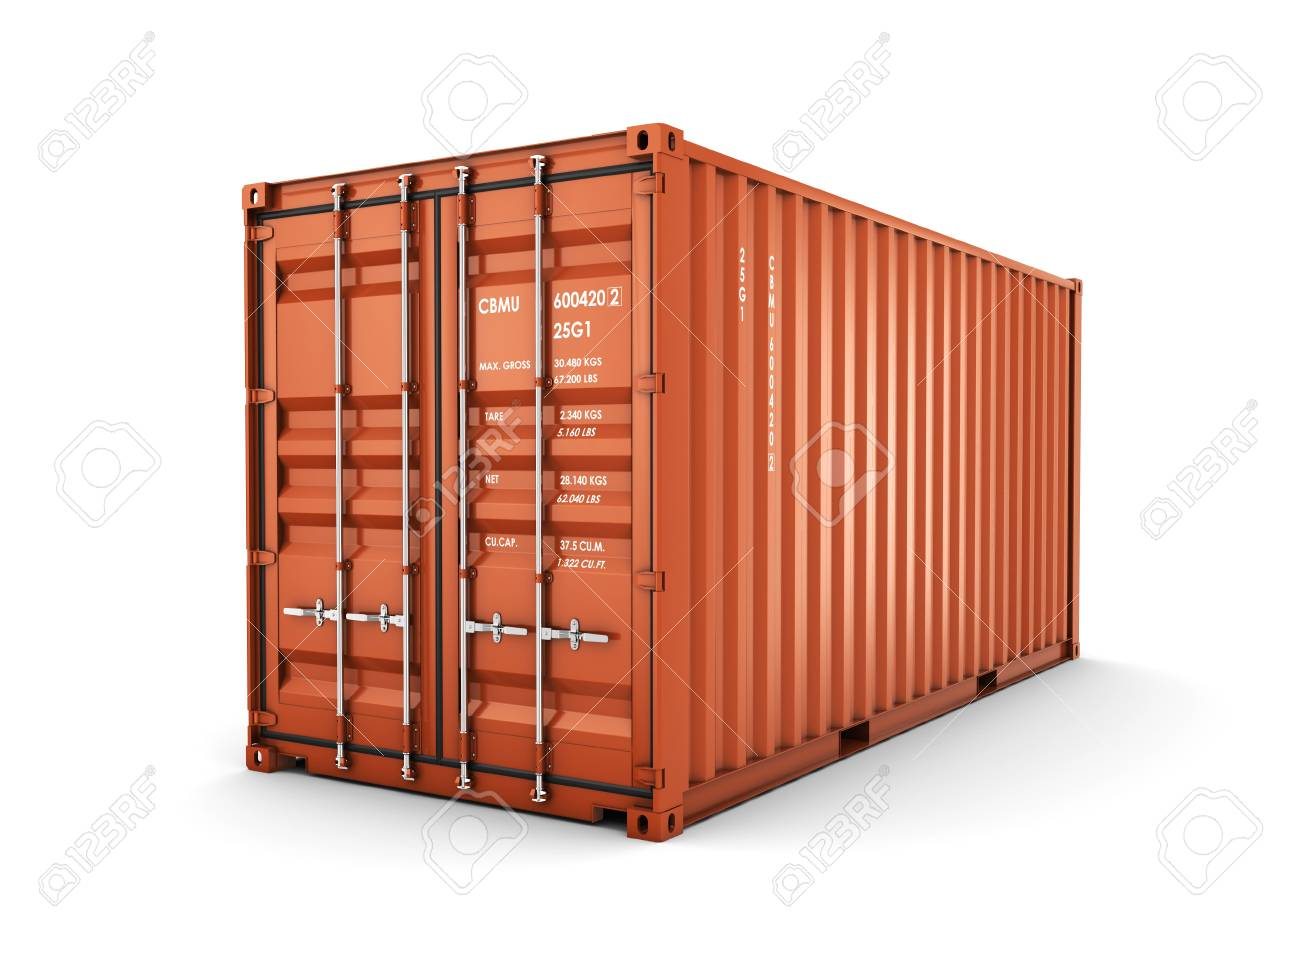 Isolated cargo container on the white background - 50490938